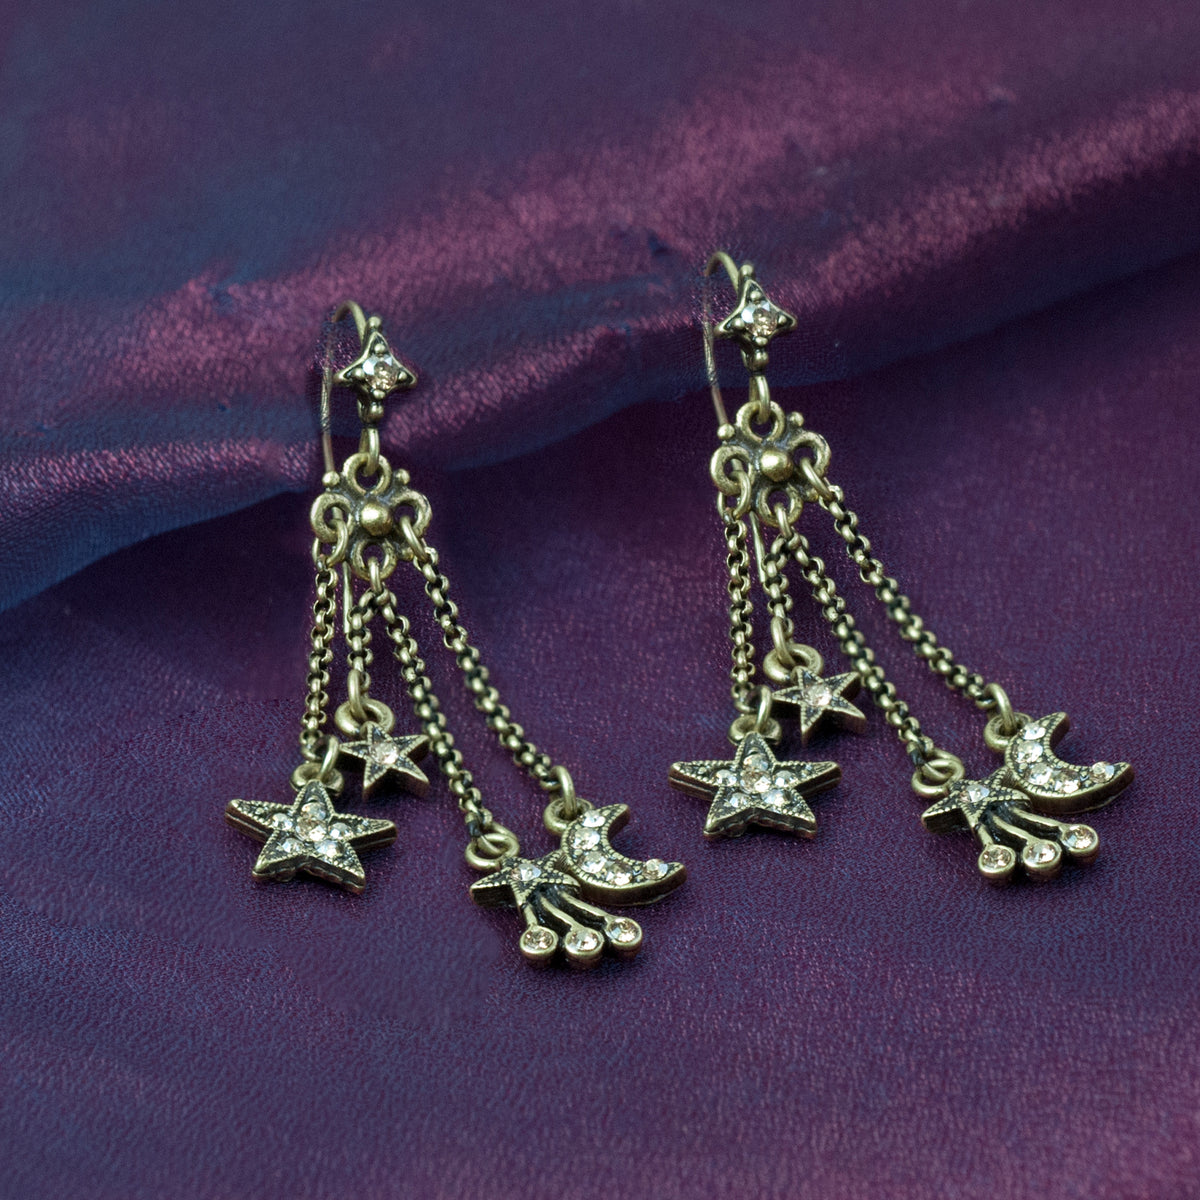 Moon & Star Delicate Tassel Earrings E1500 - sweetromanceonlinejewelry